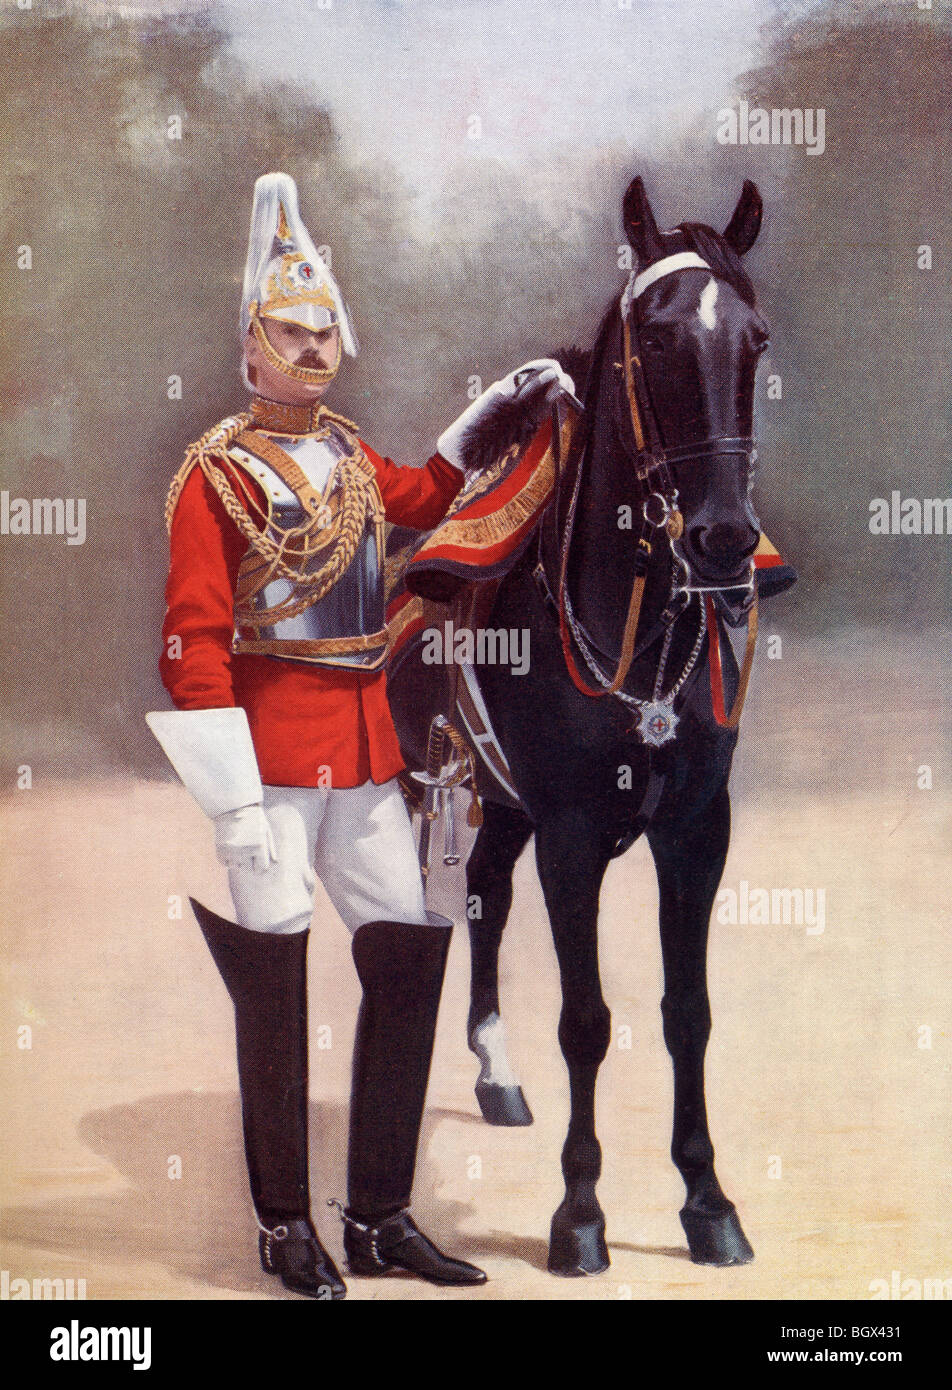 Household Cavalry, Captain, 2nd Life Guards in the 19th century. - Stock Image